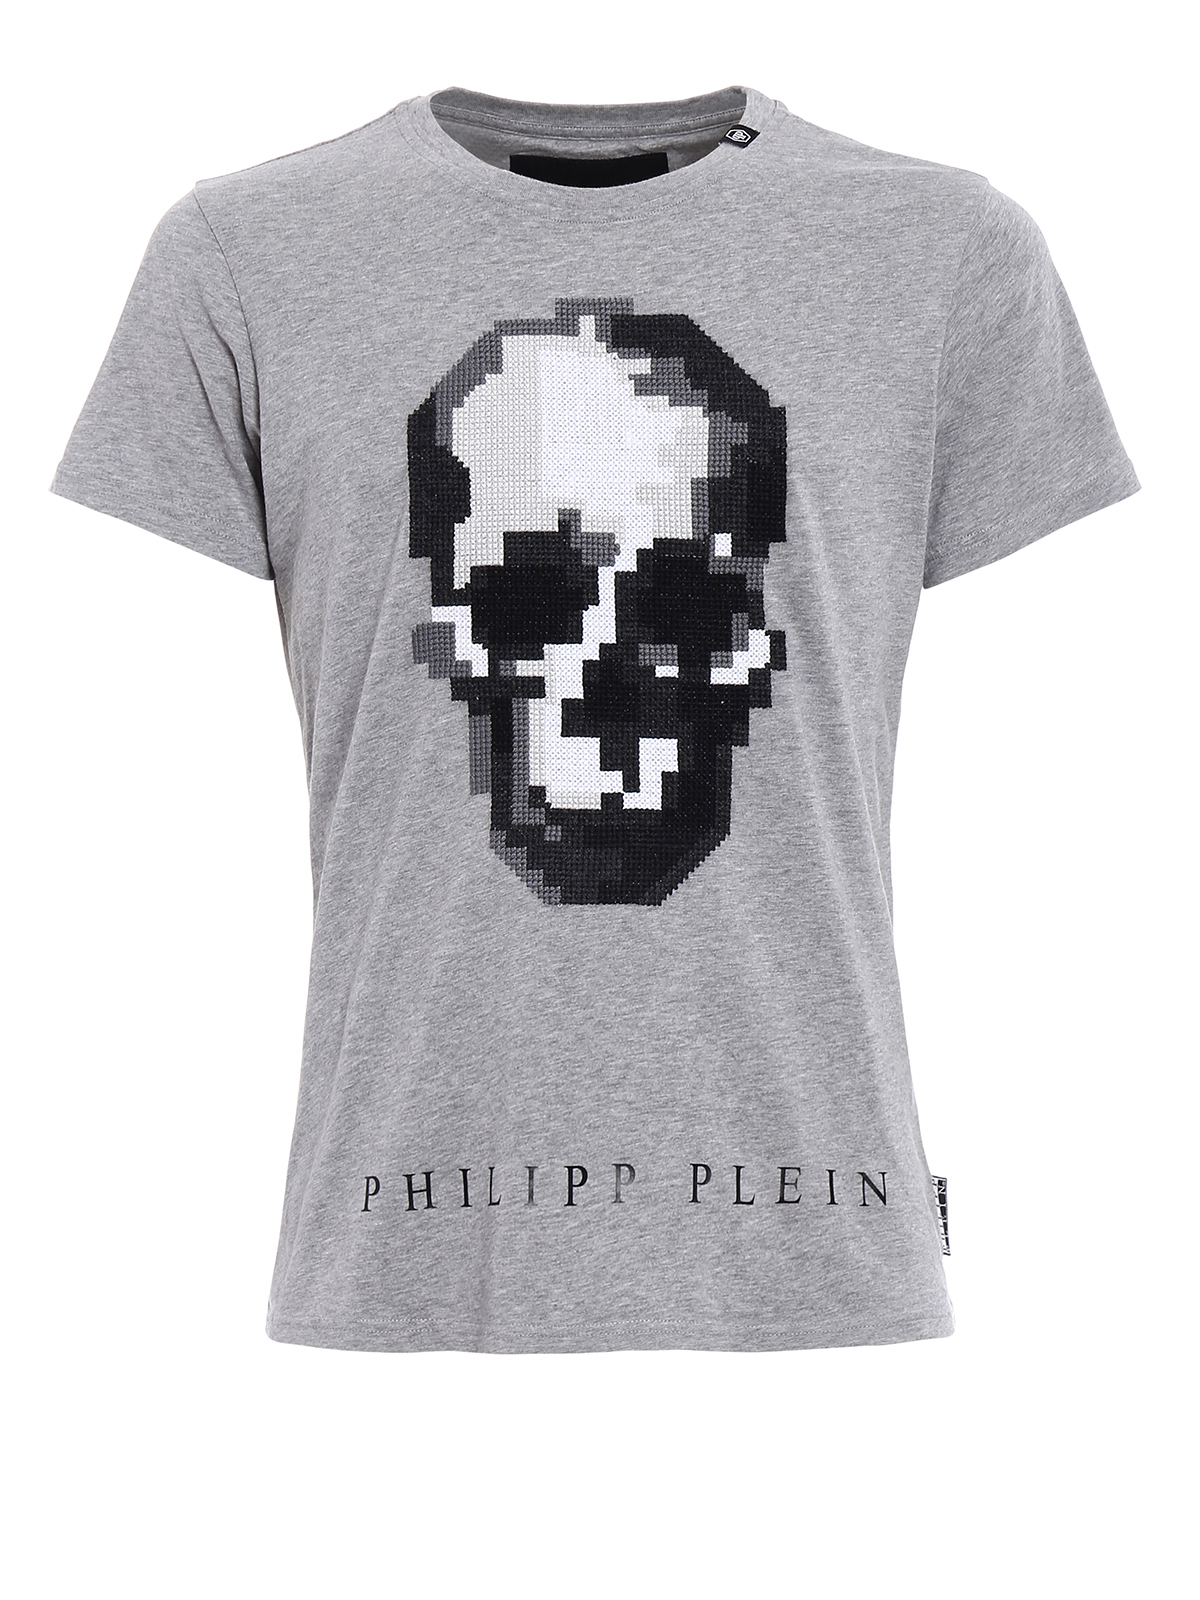 In China Sale Online Clearance Classic skull embroidered T-shirt - Black Philipp Plein Inexpensive kcgWQq0